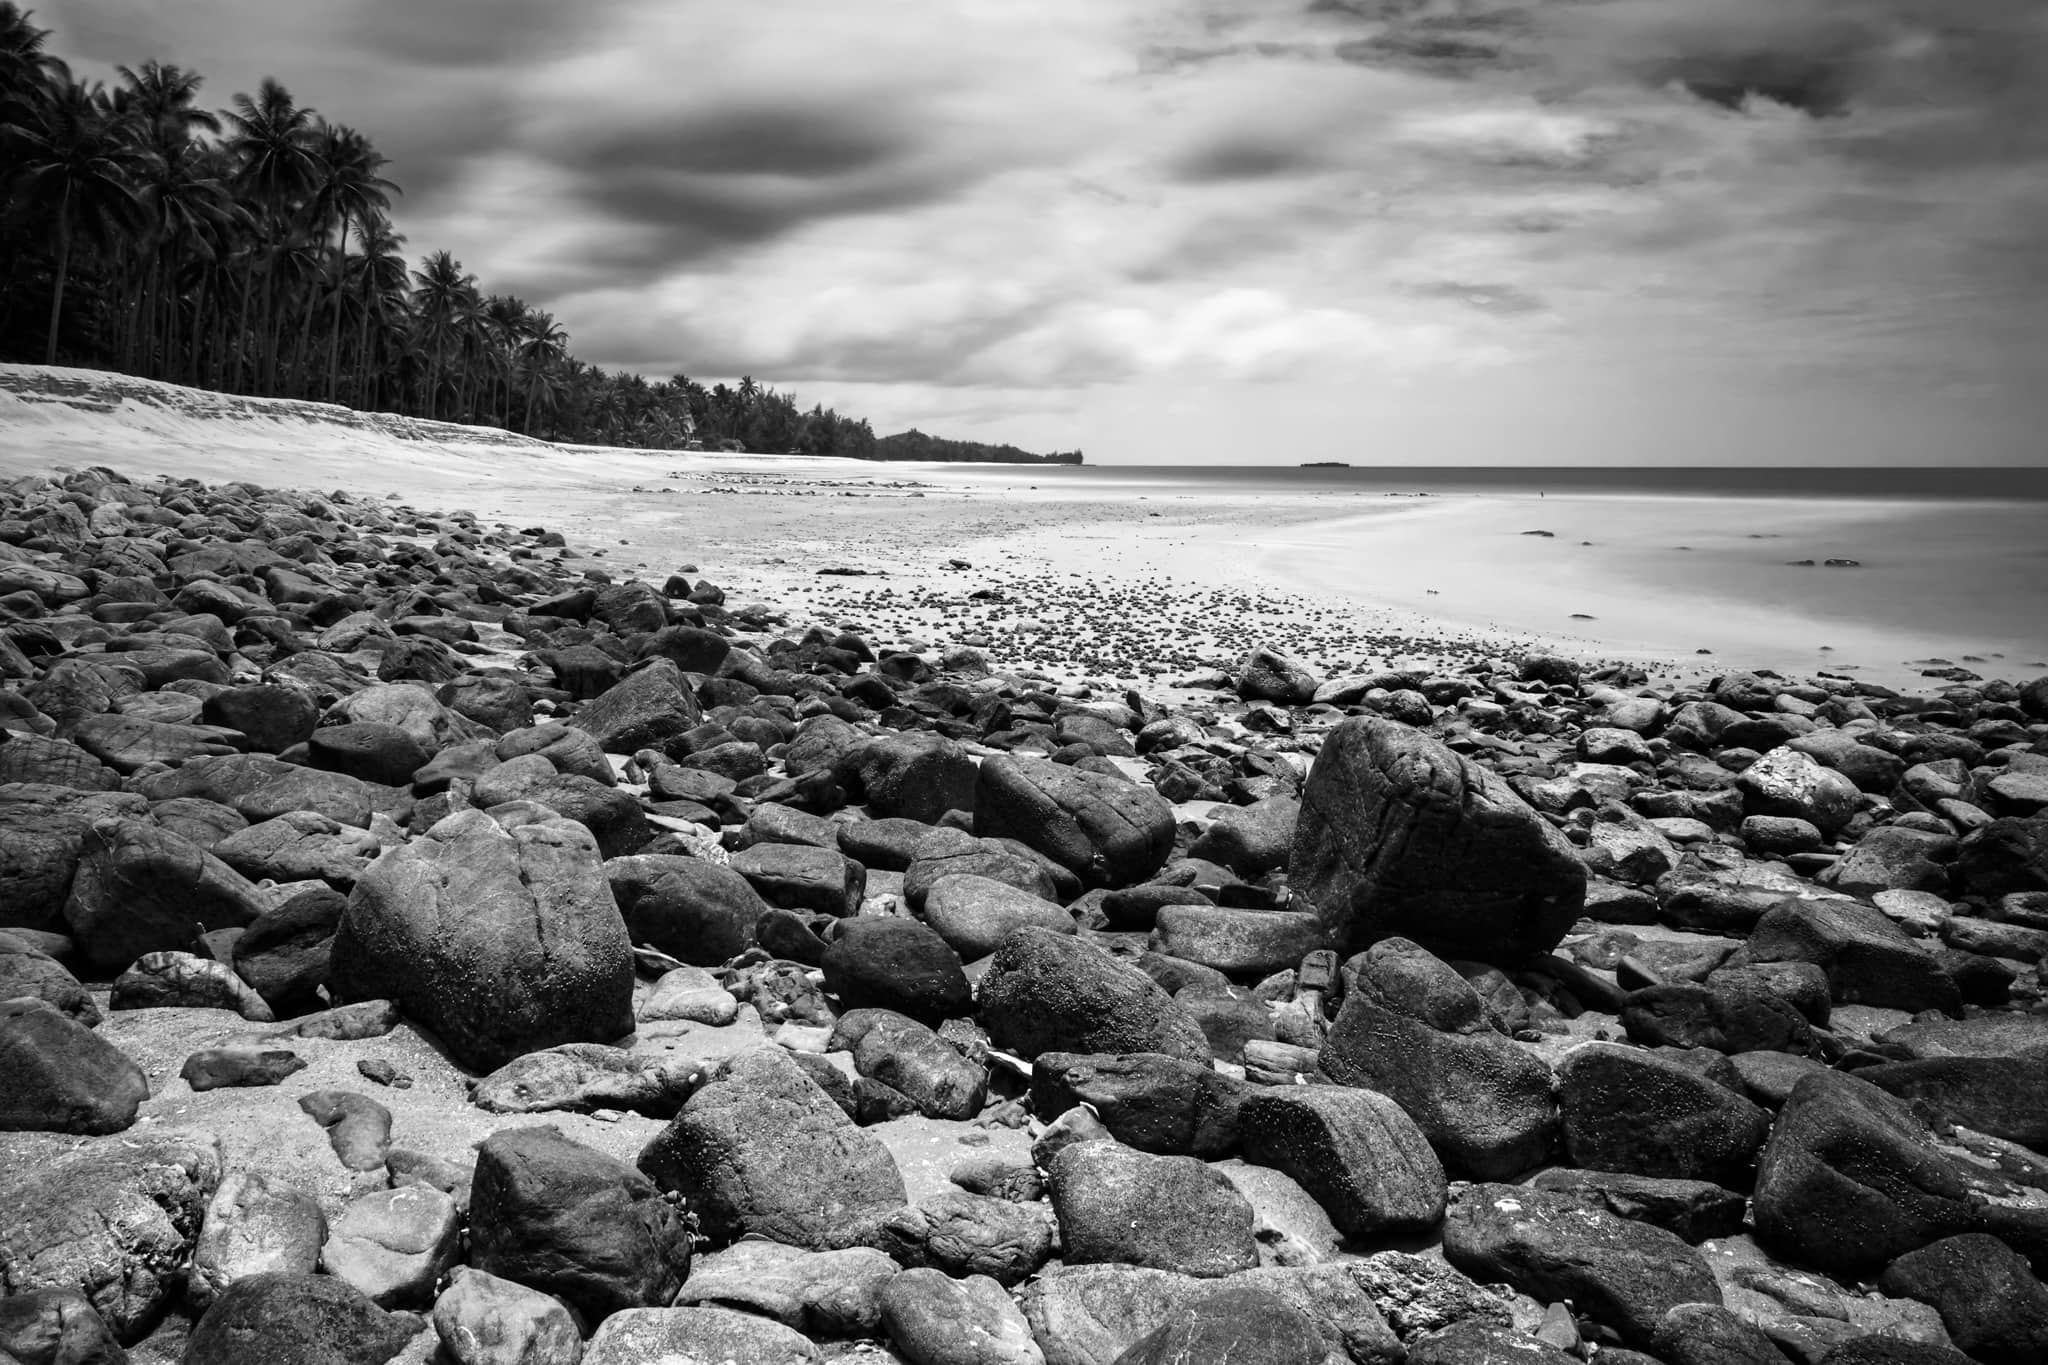 Black and white long exposure of Baan Krut beach, Thailand. Stones on the foreground.